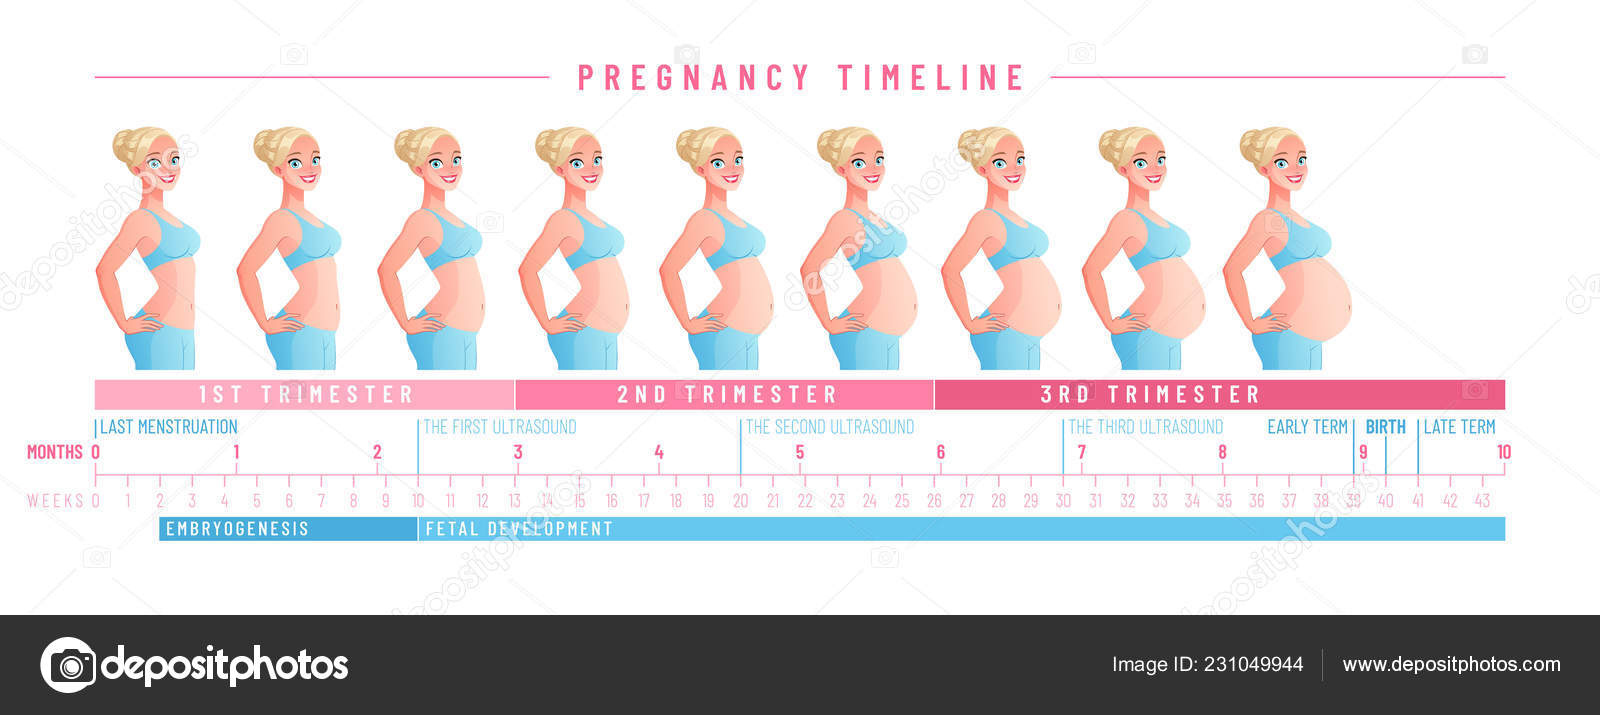 hight resolution of pregnancy timeline by weeks isolated vector illustration stock vector